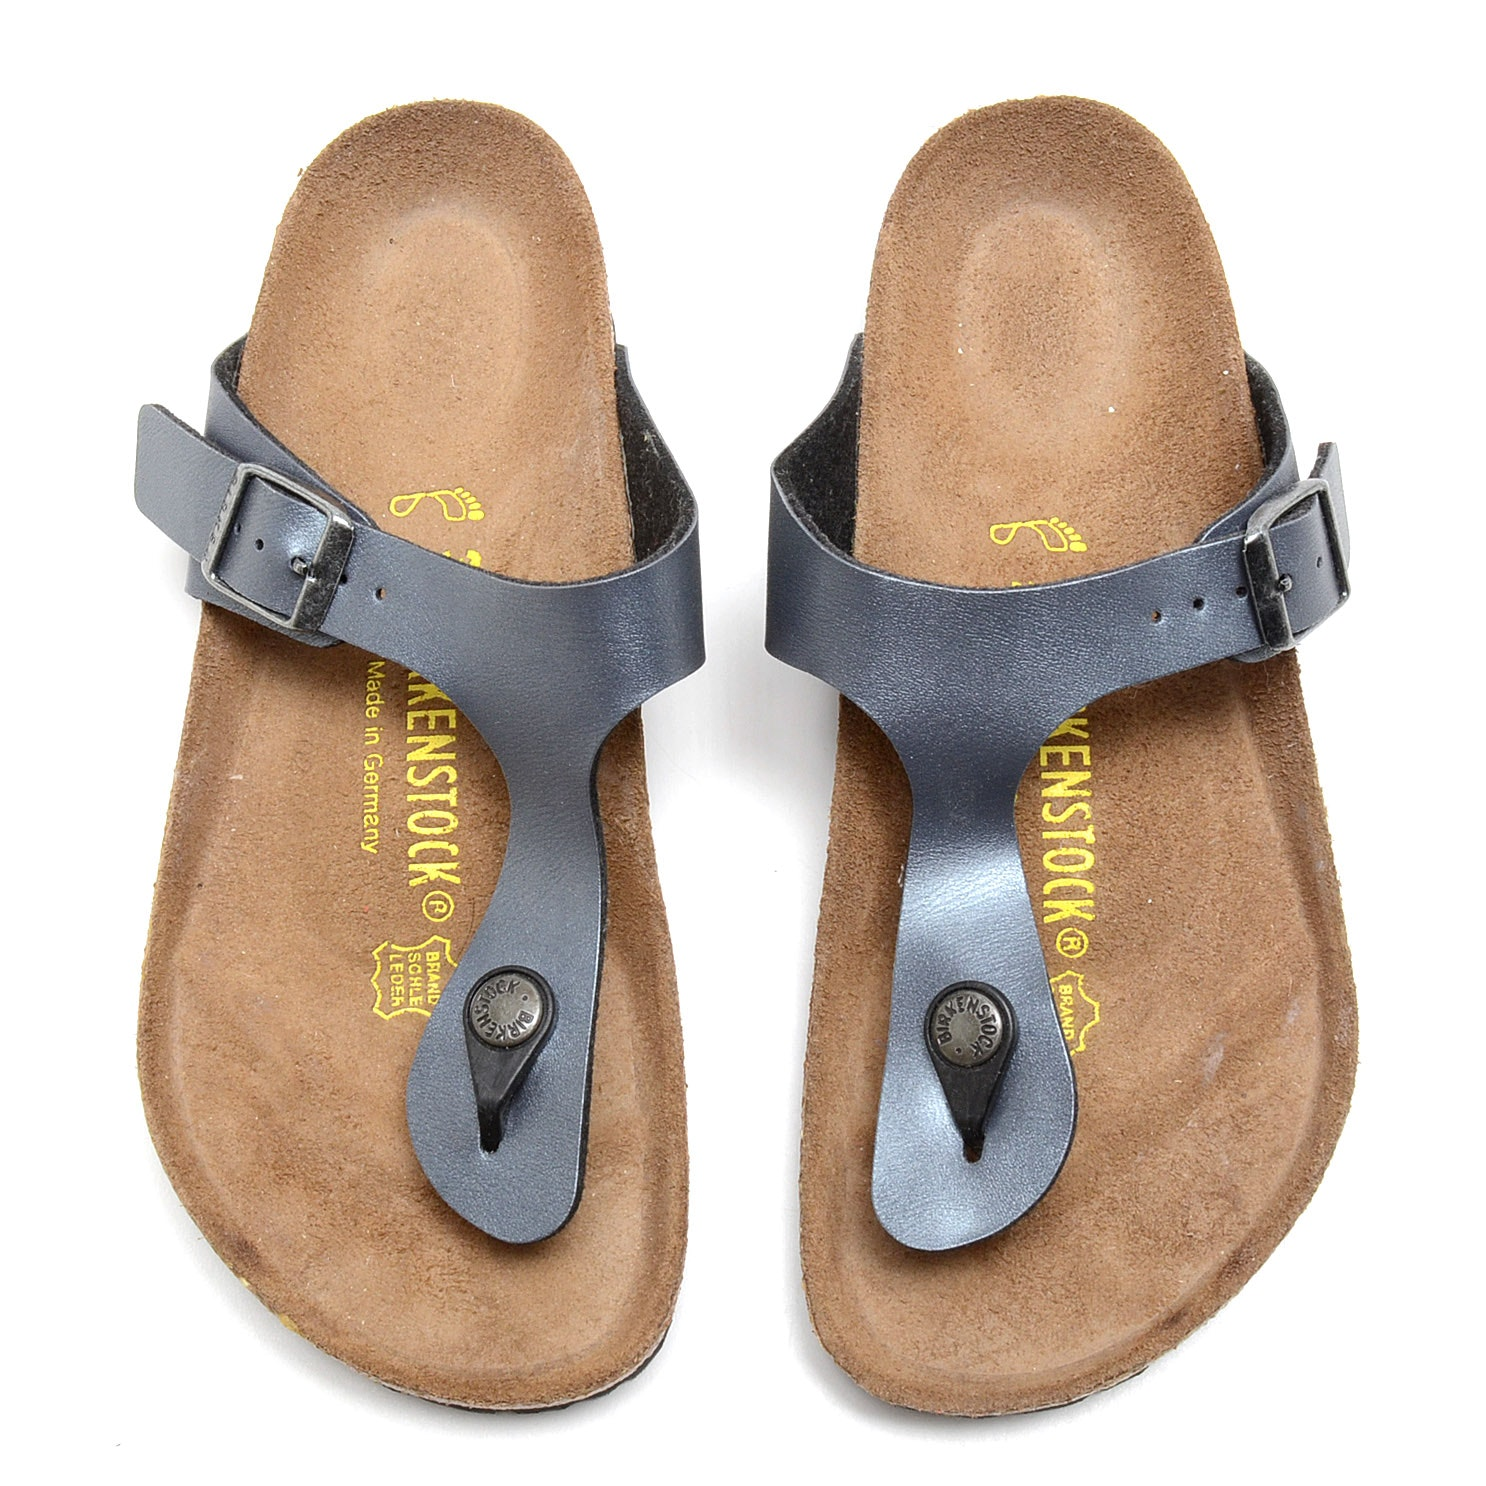 Birkenstock Classic Sandals in Pewter Leather